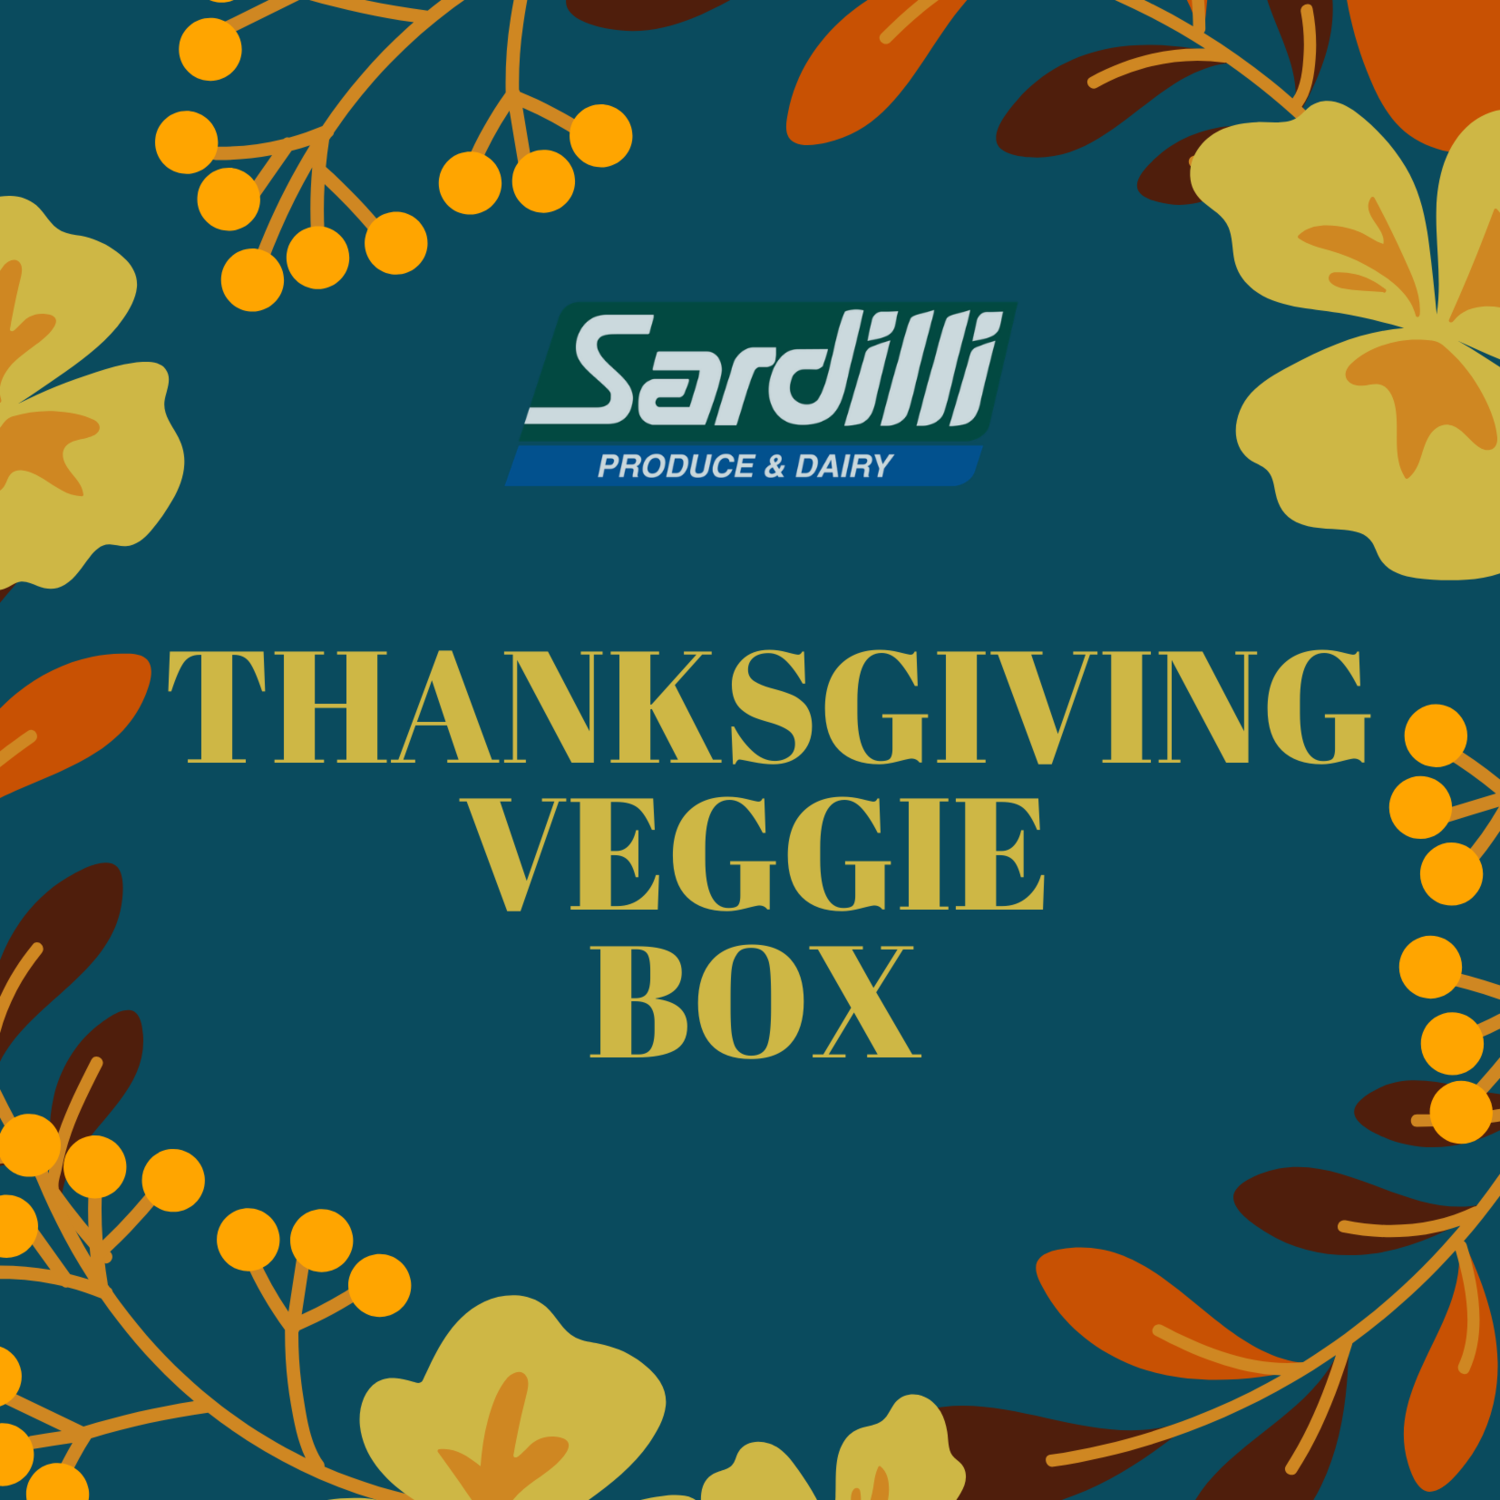 THANKSGIVING VEGGIE BOX -  AVAILABLE ONLY TUESDAY NOV 24th. ALL THE VEGGIES YOU NEED FOR THANKSGIVING.